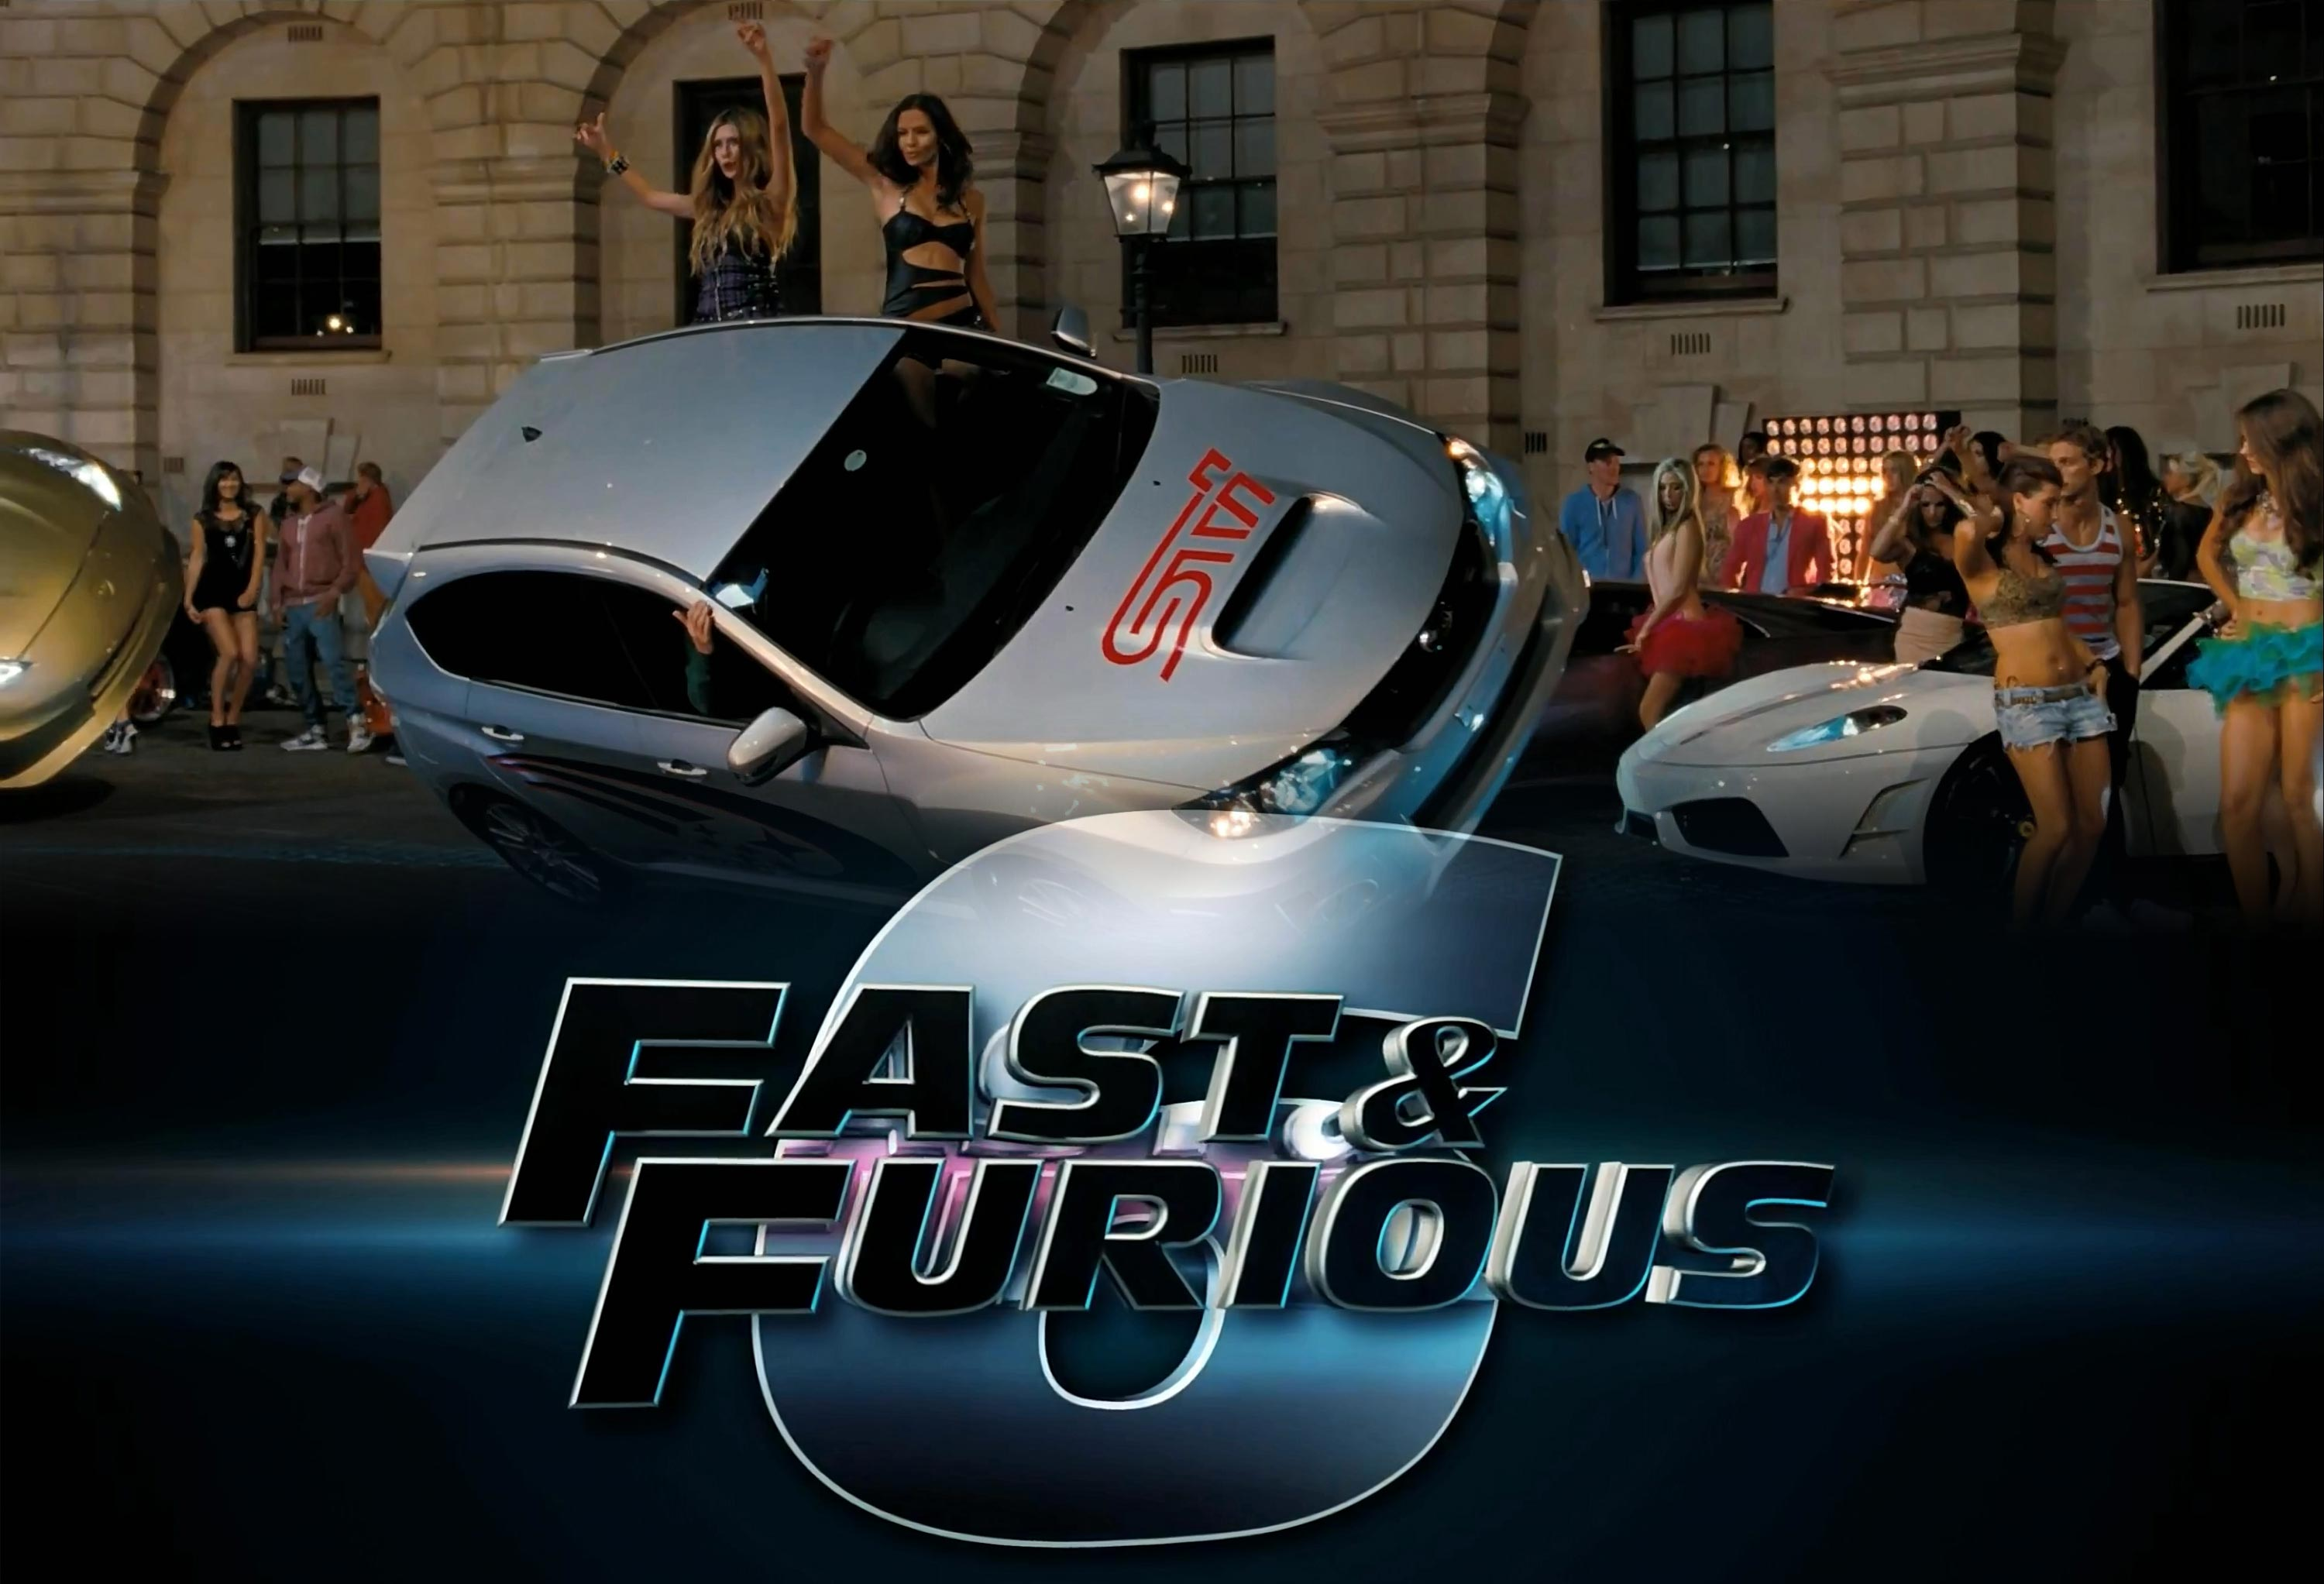 FAST AND FURIOUS 6 videos